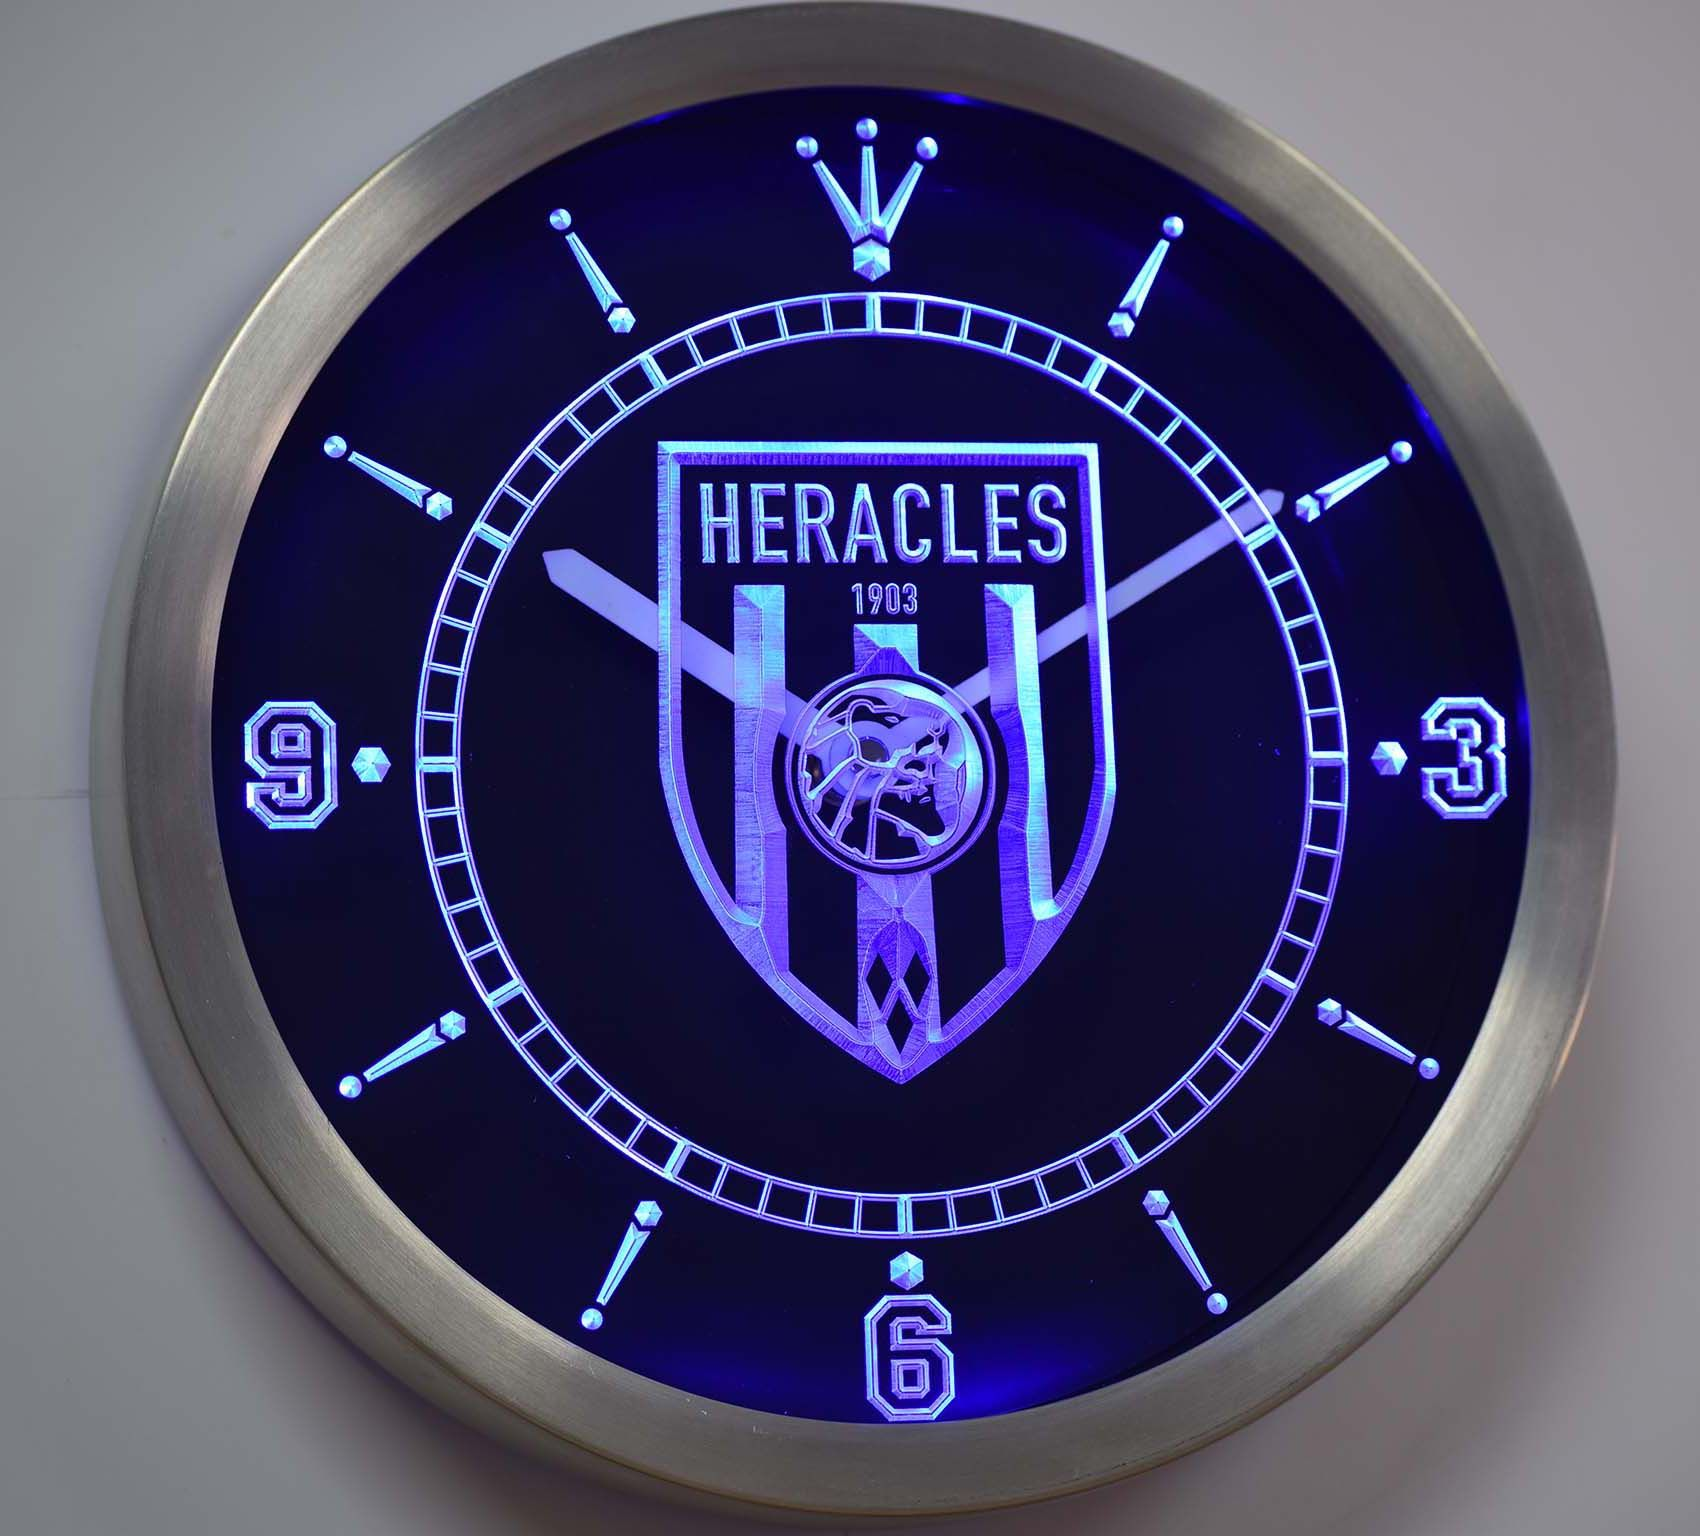 Nc1012 Sc Heracles Almelo 1903 Eredivisie Neon Sign Led Wall Clock Led Wall Clock Wall Clock Clock